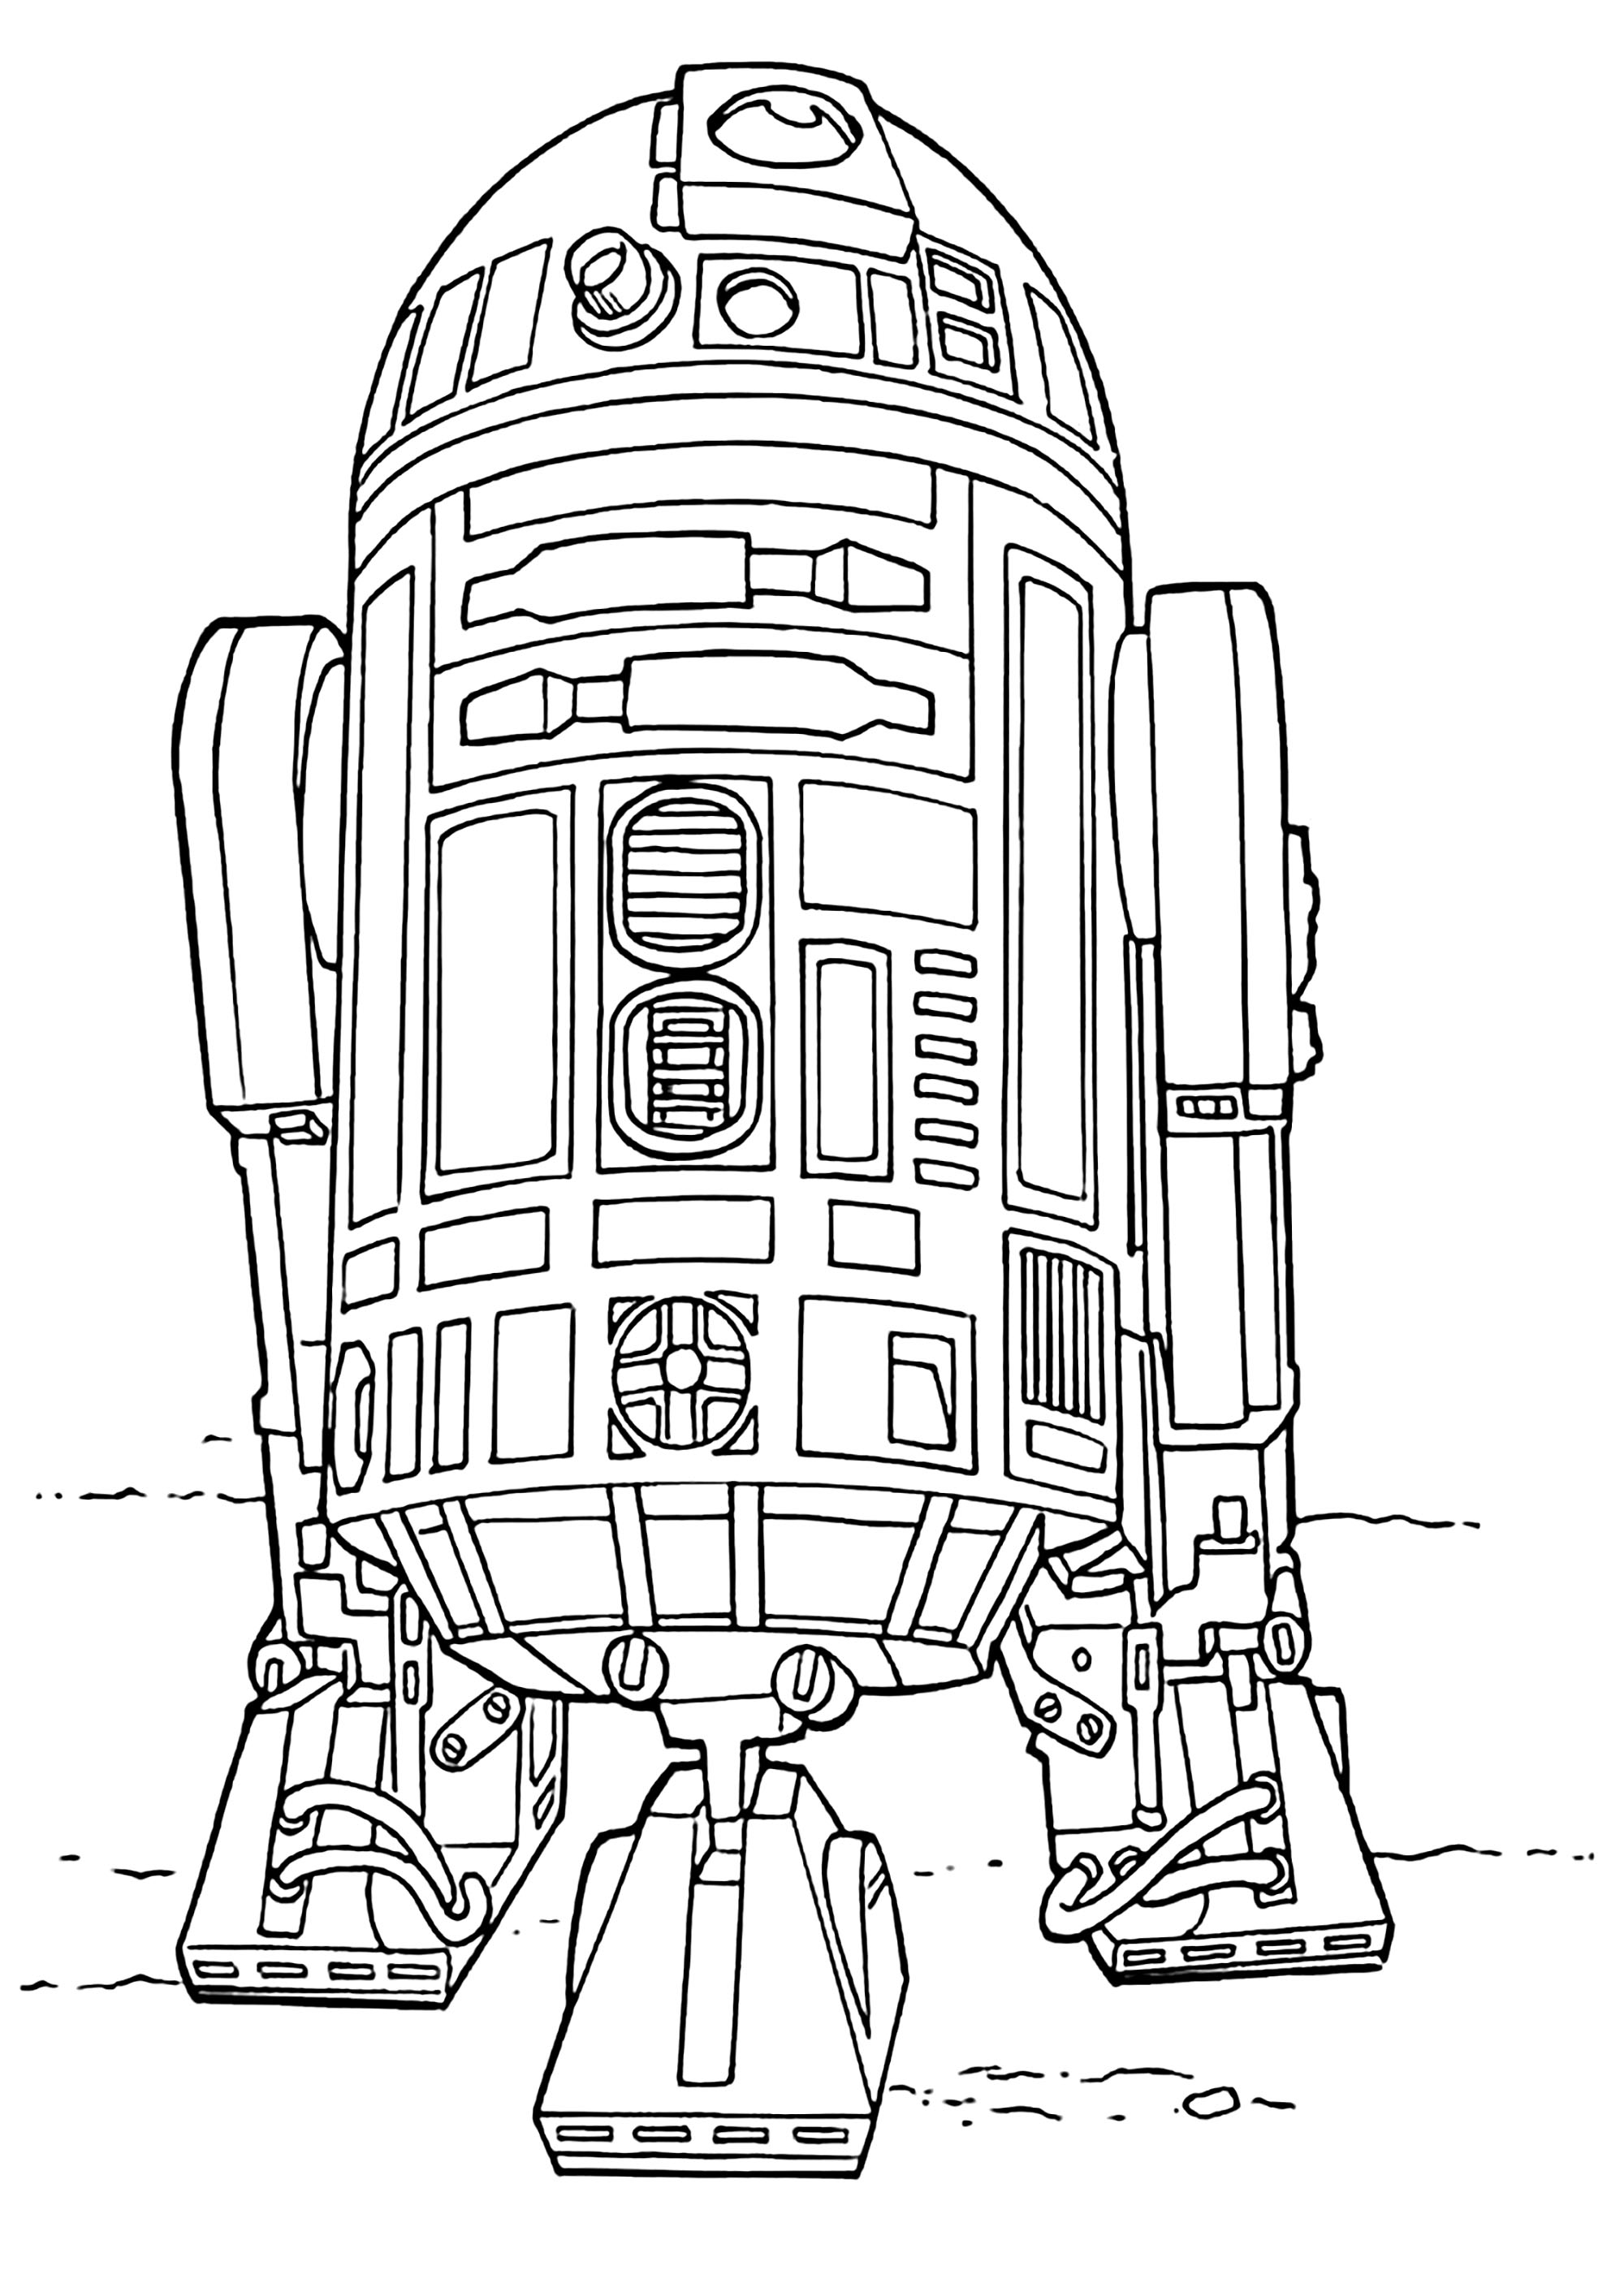 star wars pictures to print and color 17 best images about myboy39s on pinterest coloring print and wars pictures star to color